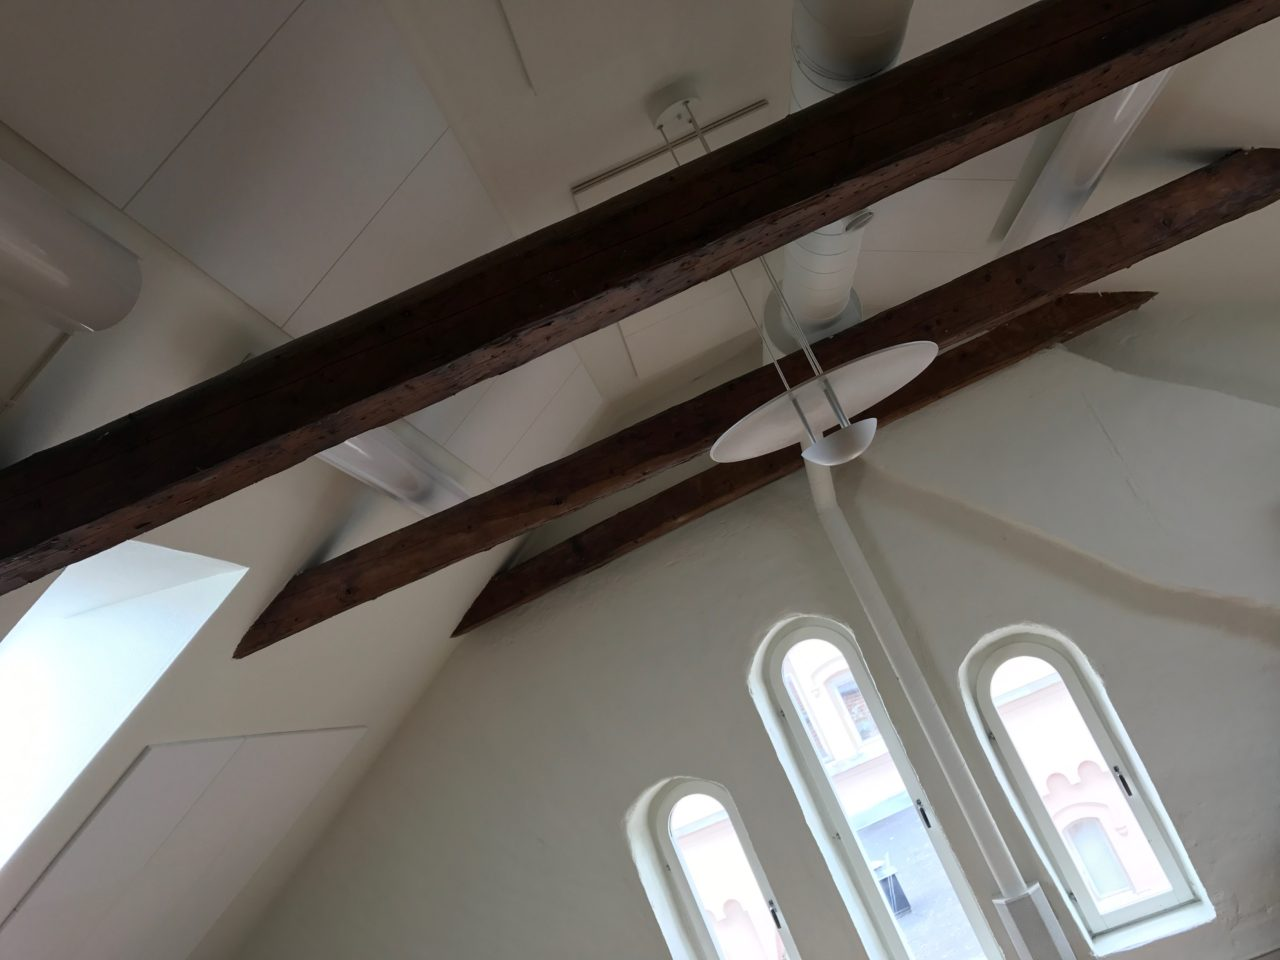 Sloped Penthouse Ceiling Beams And Windows